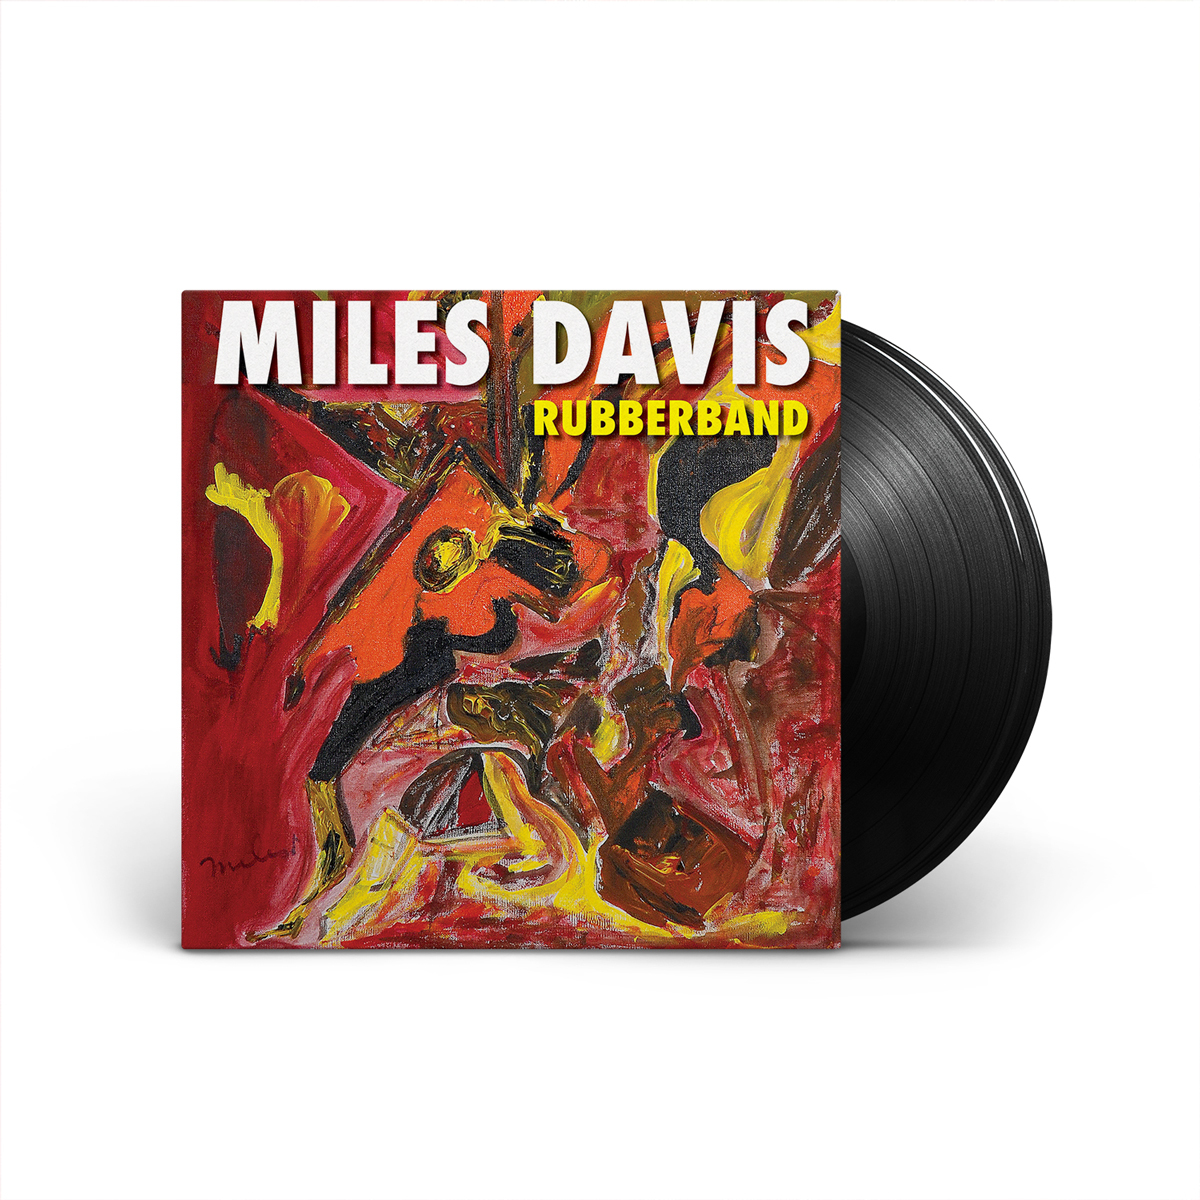 Miles Davis Rubberband (2-disc) LP